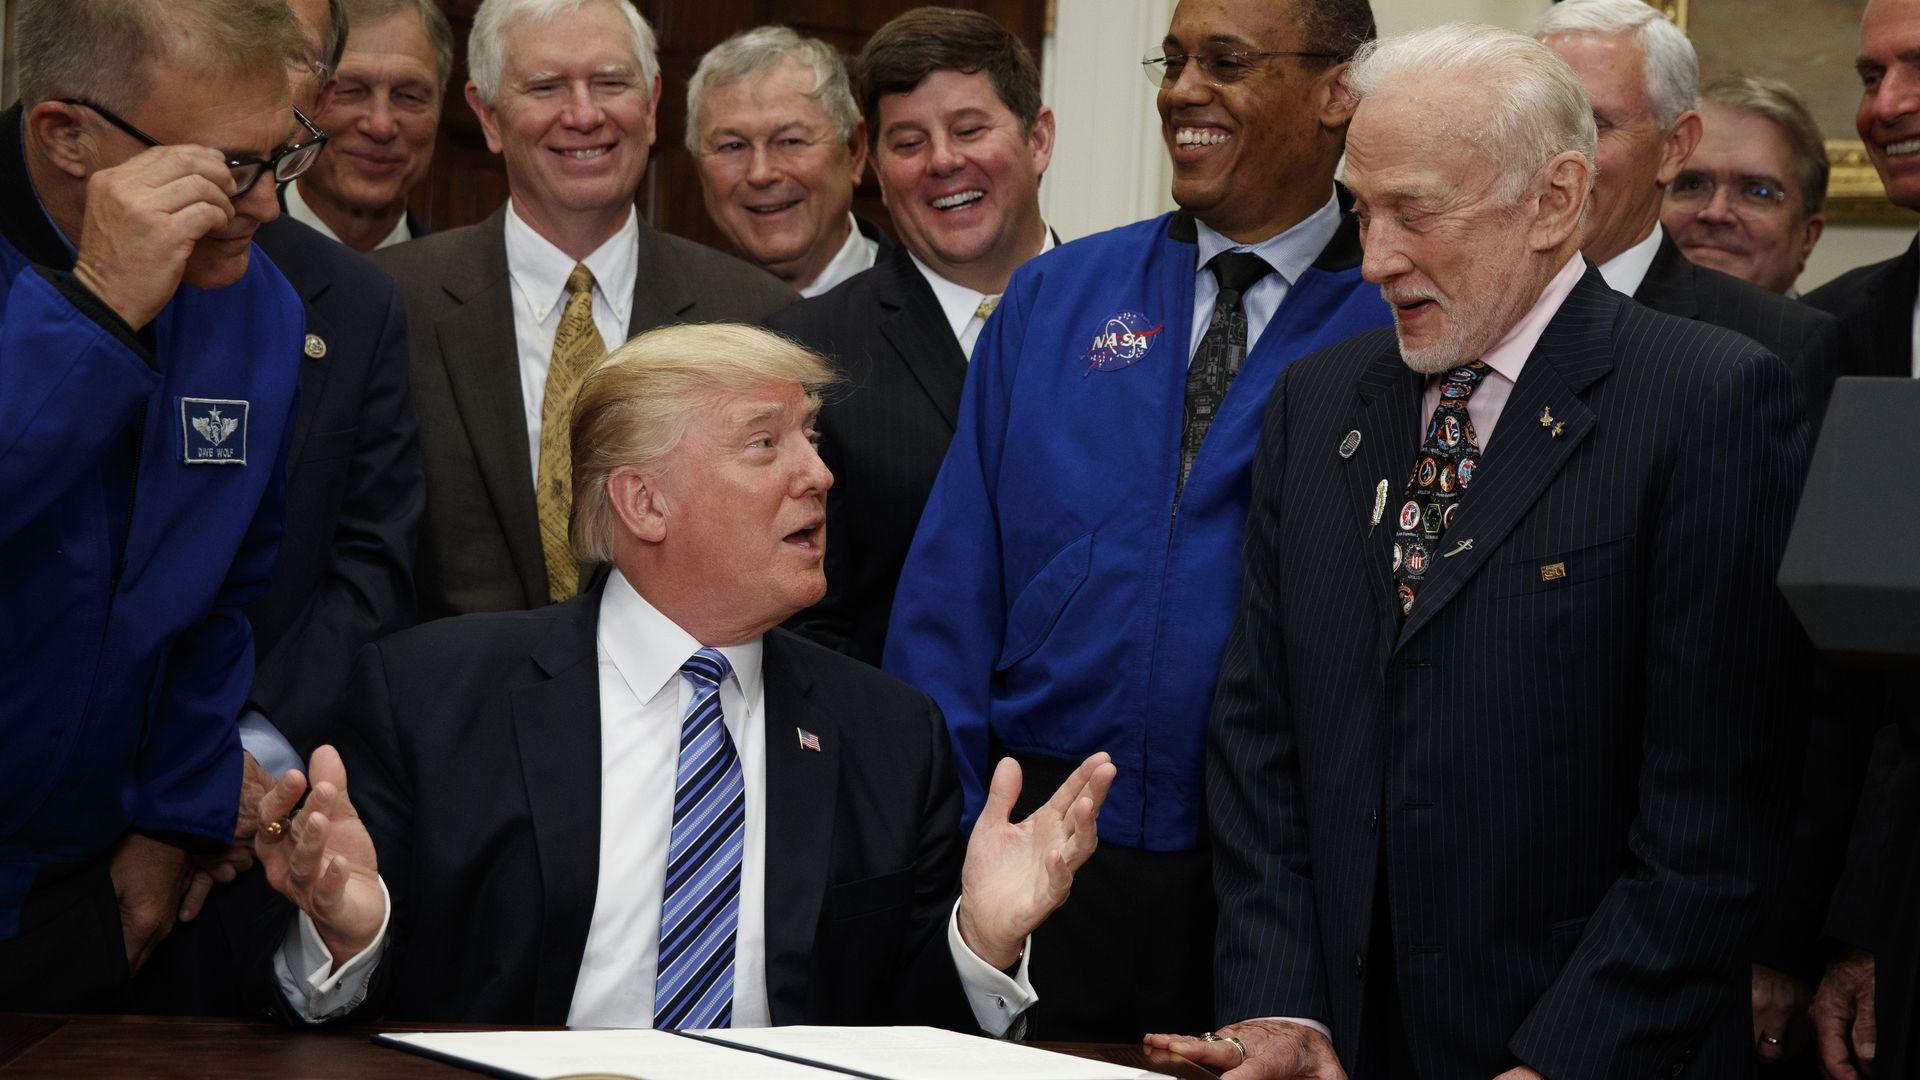 Trump and Buzz Aldrin